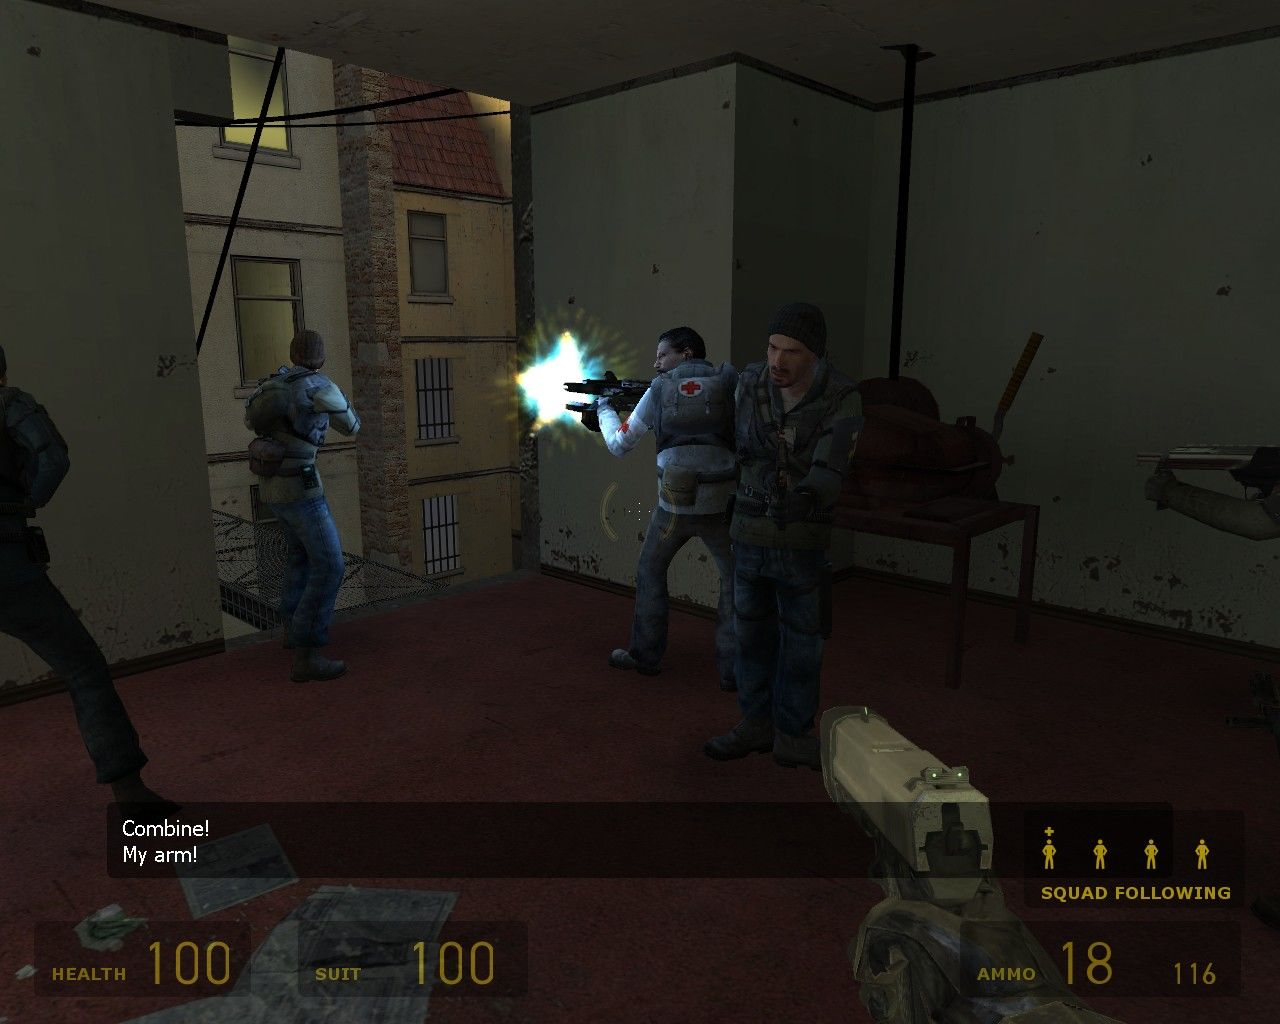 Half-Life 2 Windows Squad following and providing cover.